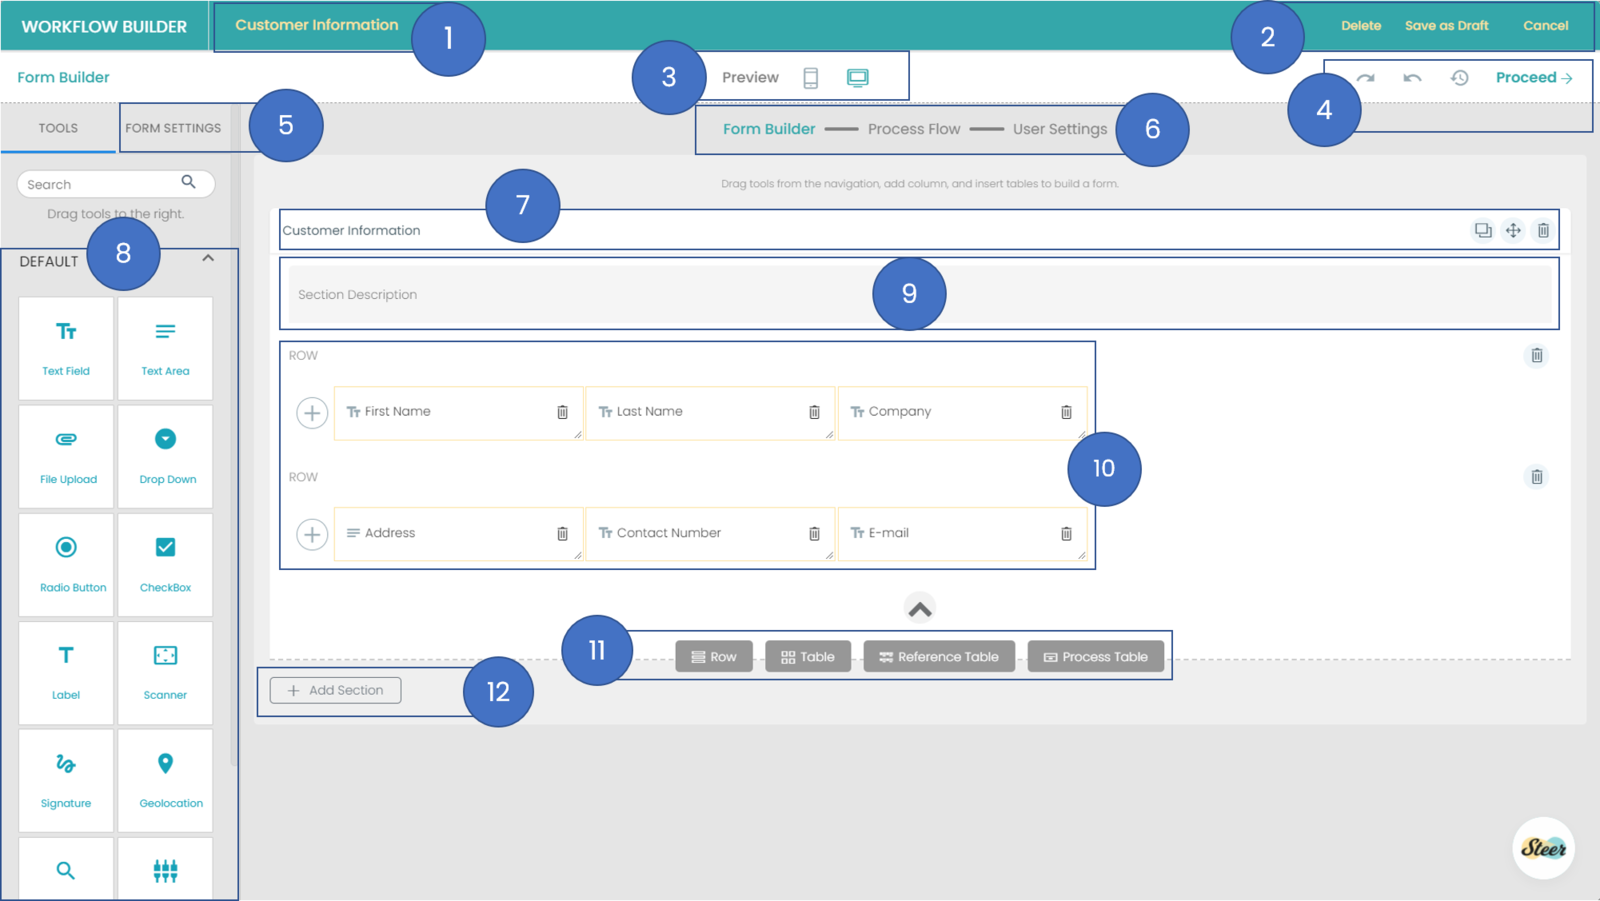 Anatomy of the Form Builder